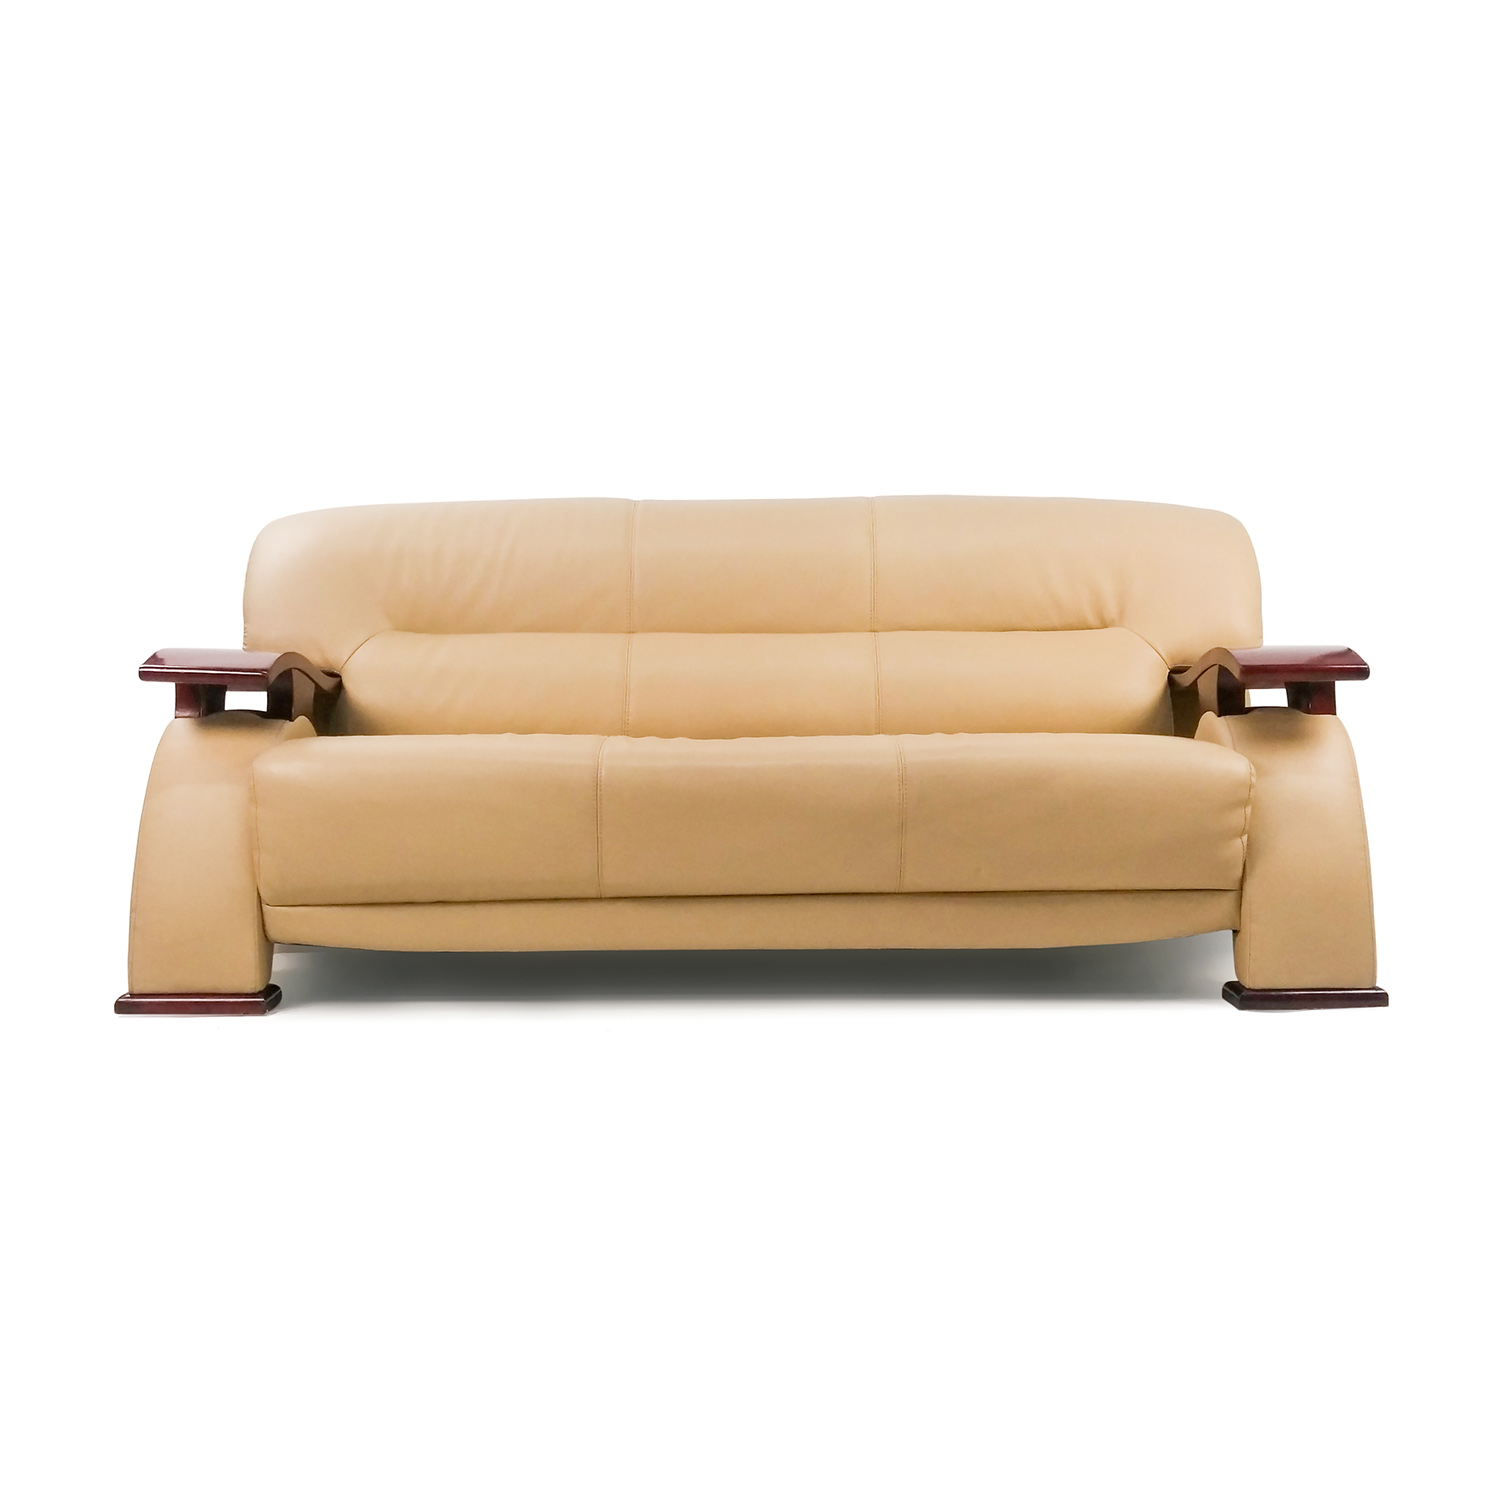 Fresh contemporary leather sofa marmsweb marmsweb Contemporary leather sofa